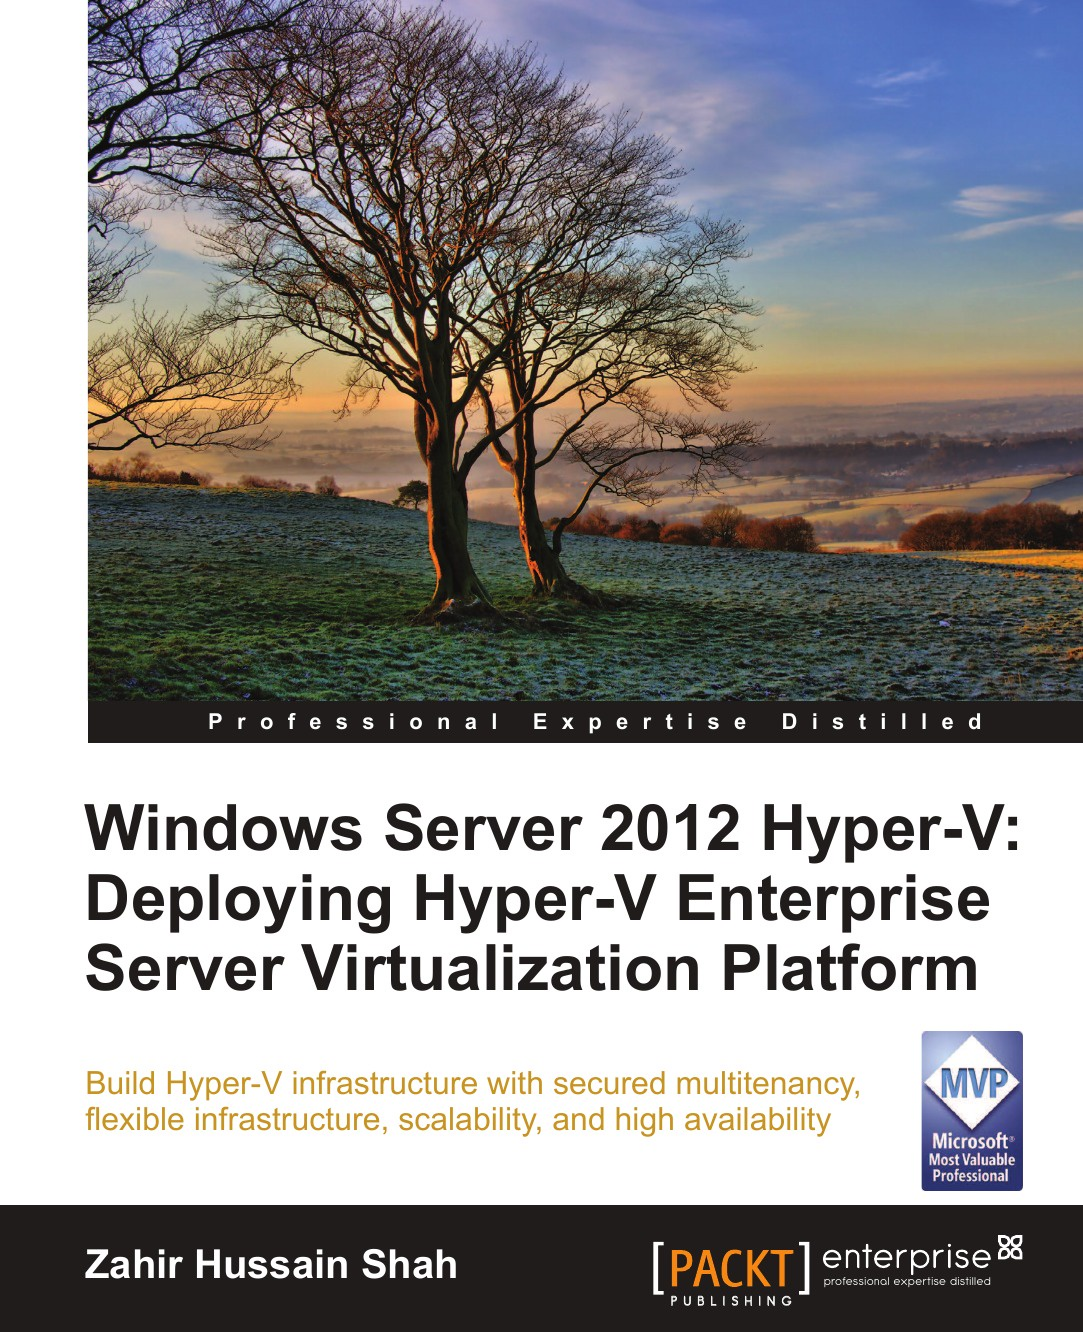 Zahir Hussain Shah, Zahir Hussain Shah Windows Server 2012 Hyper-V. Deploying the Hyper-V Enterprise Server Virtualization Platform цена